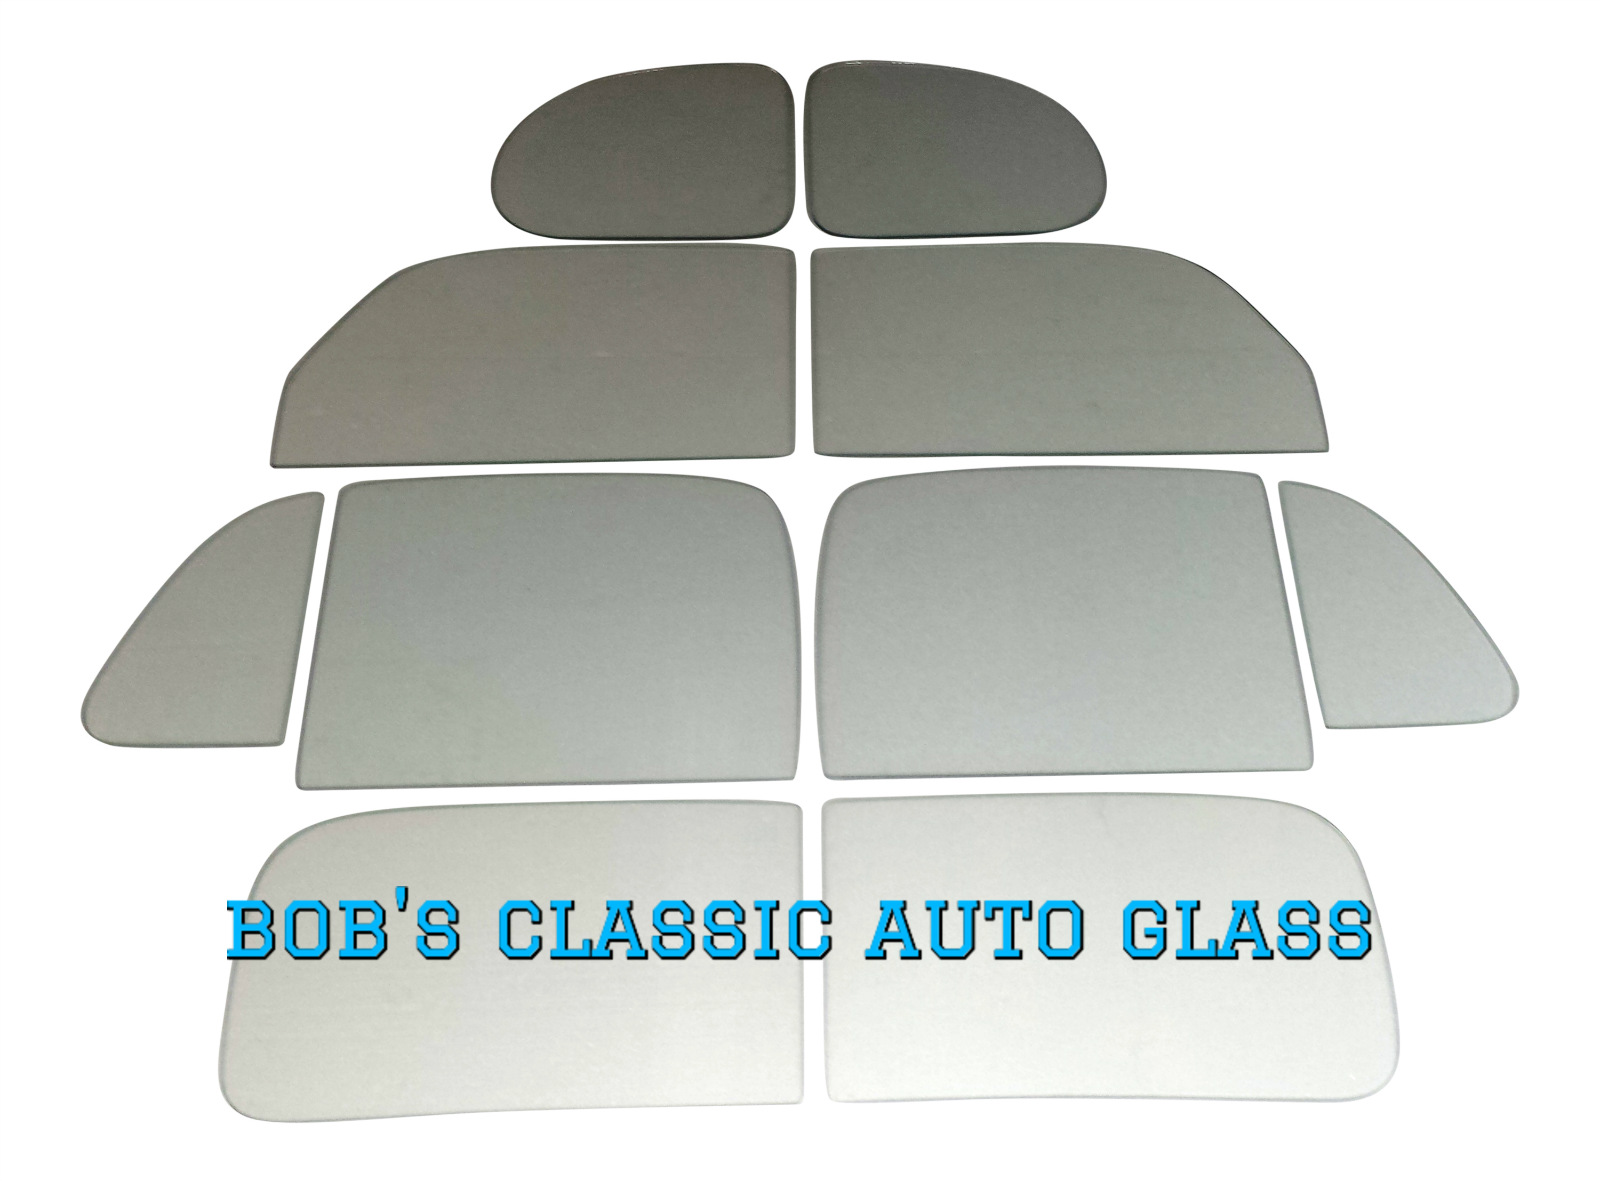 1942 Chrysler 4 Door Sedan Classic Auto Glass Rest